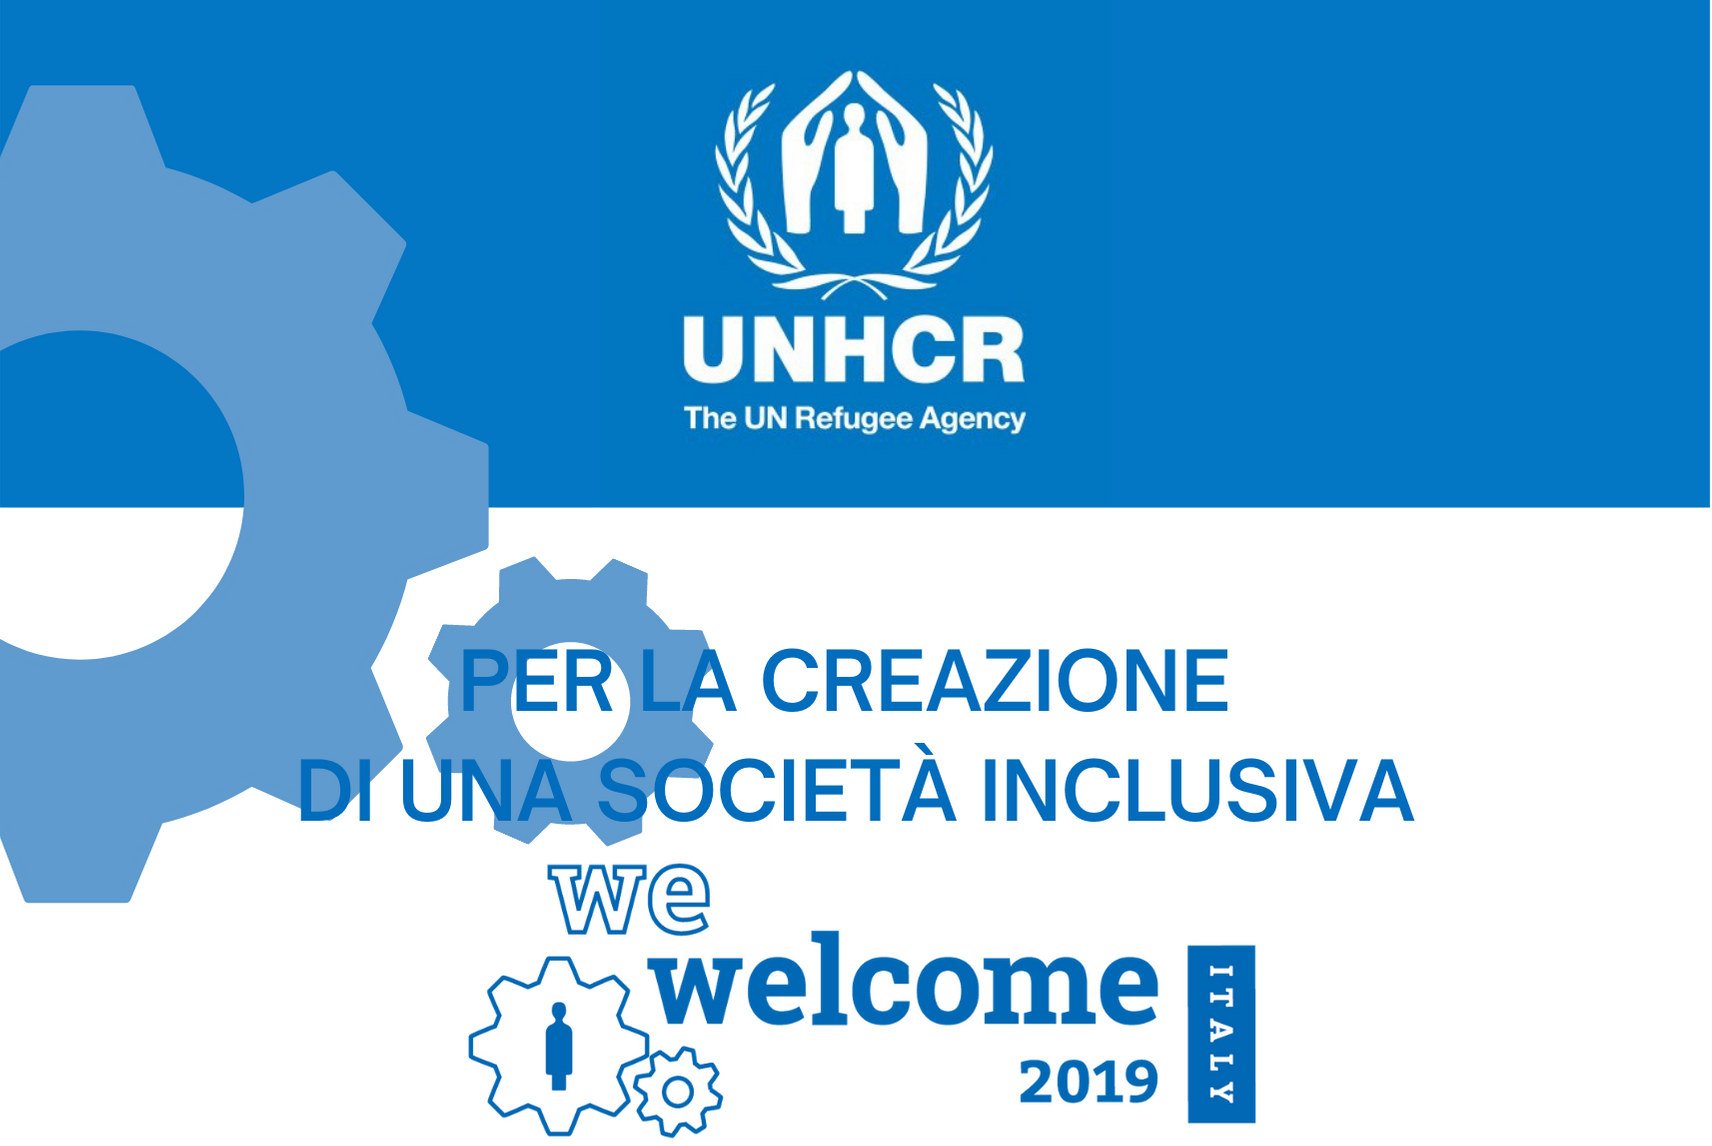 CrescereInsieme premiata con il logo WE Welcome dall'UNHCR